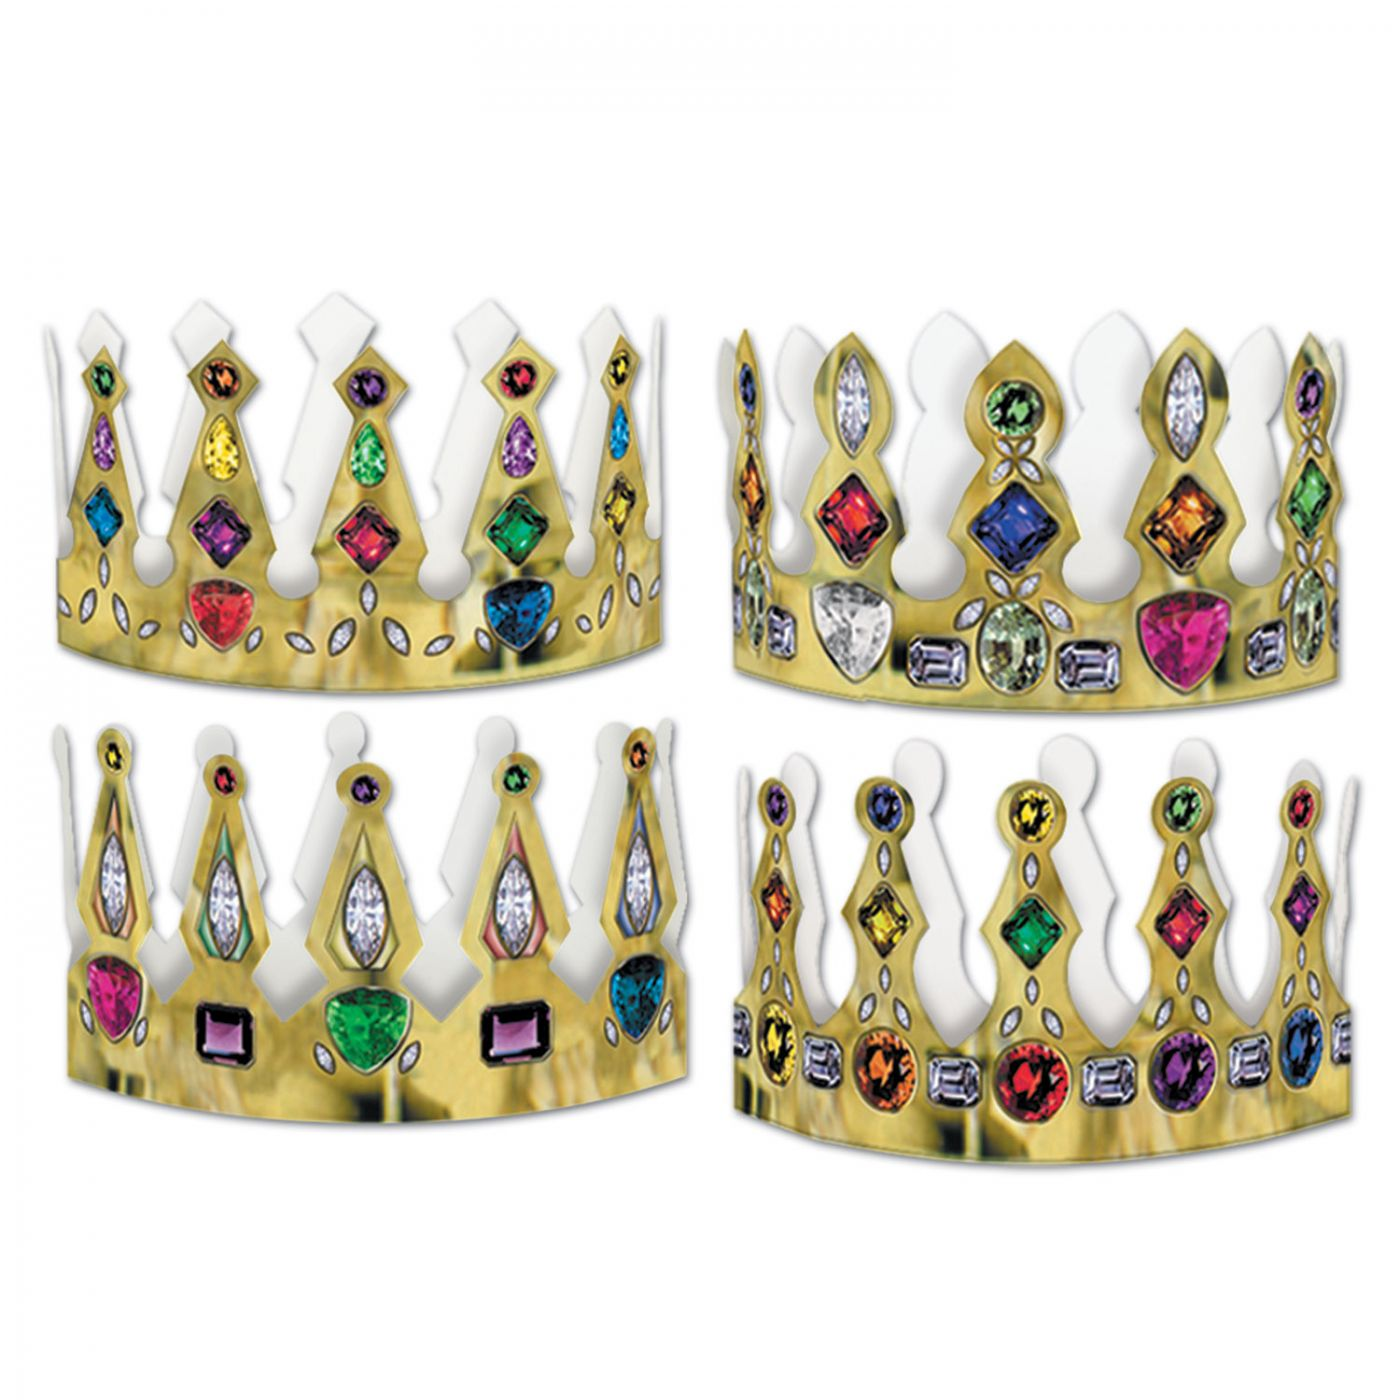 Pkgd Printed Jeweled Crowns image